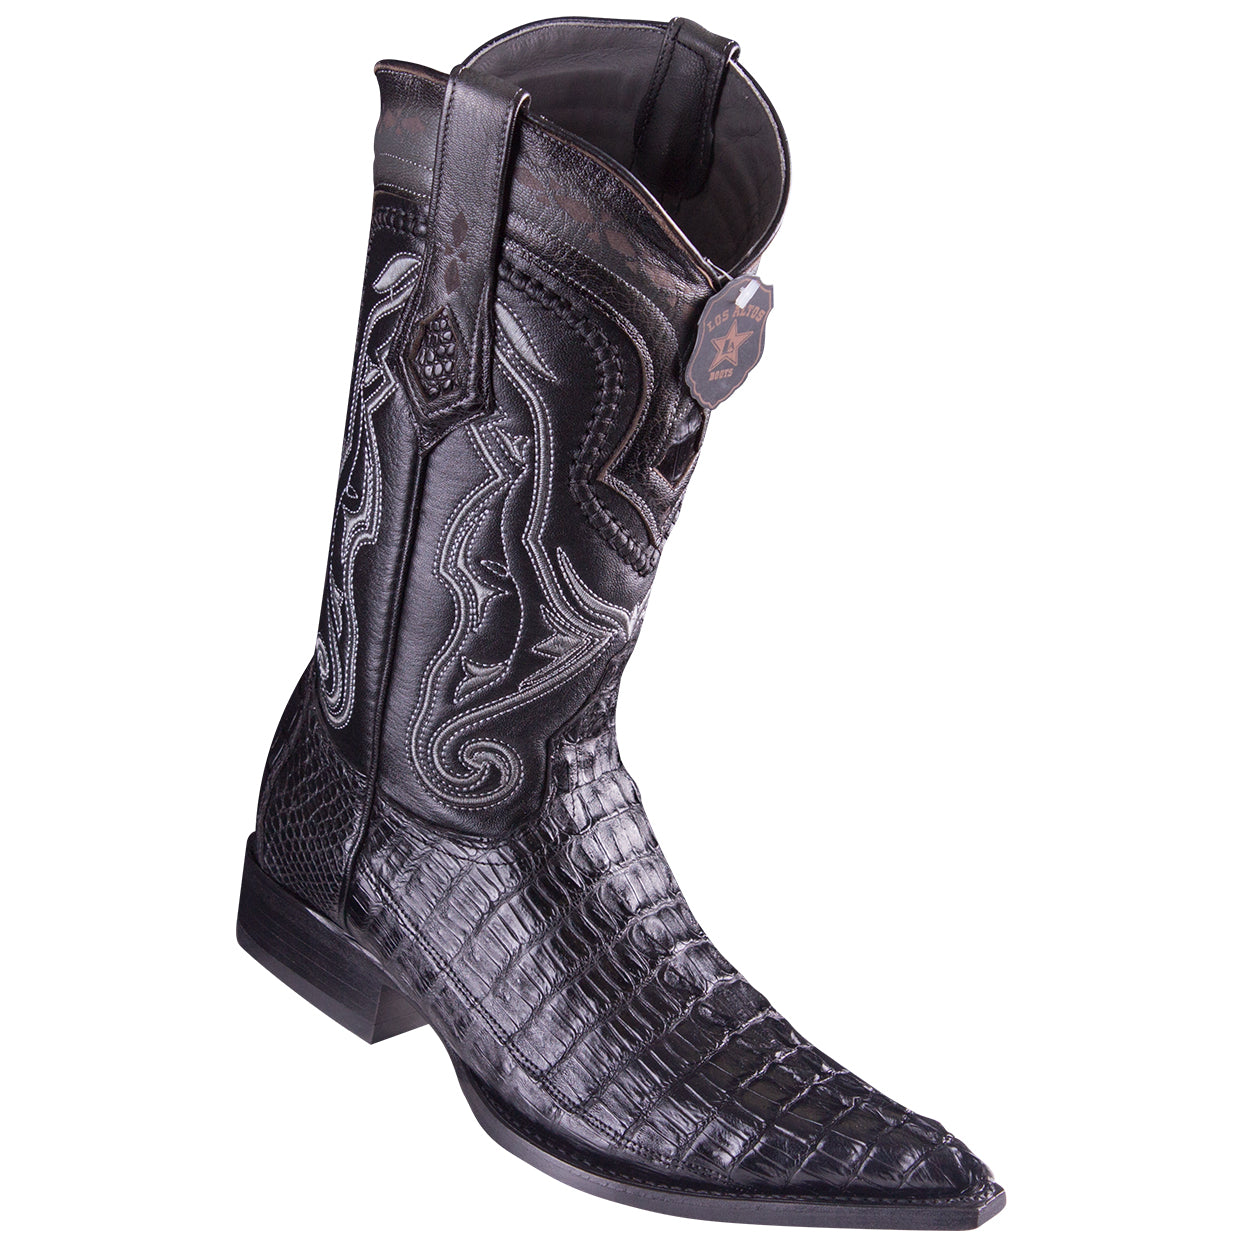 Los Altos Boots Caiman Tail Black Pointed Toe Cowboy Boots